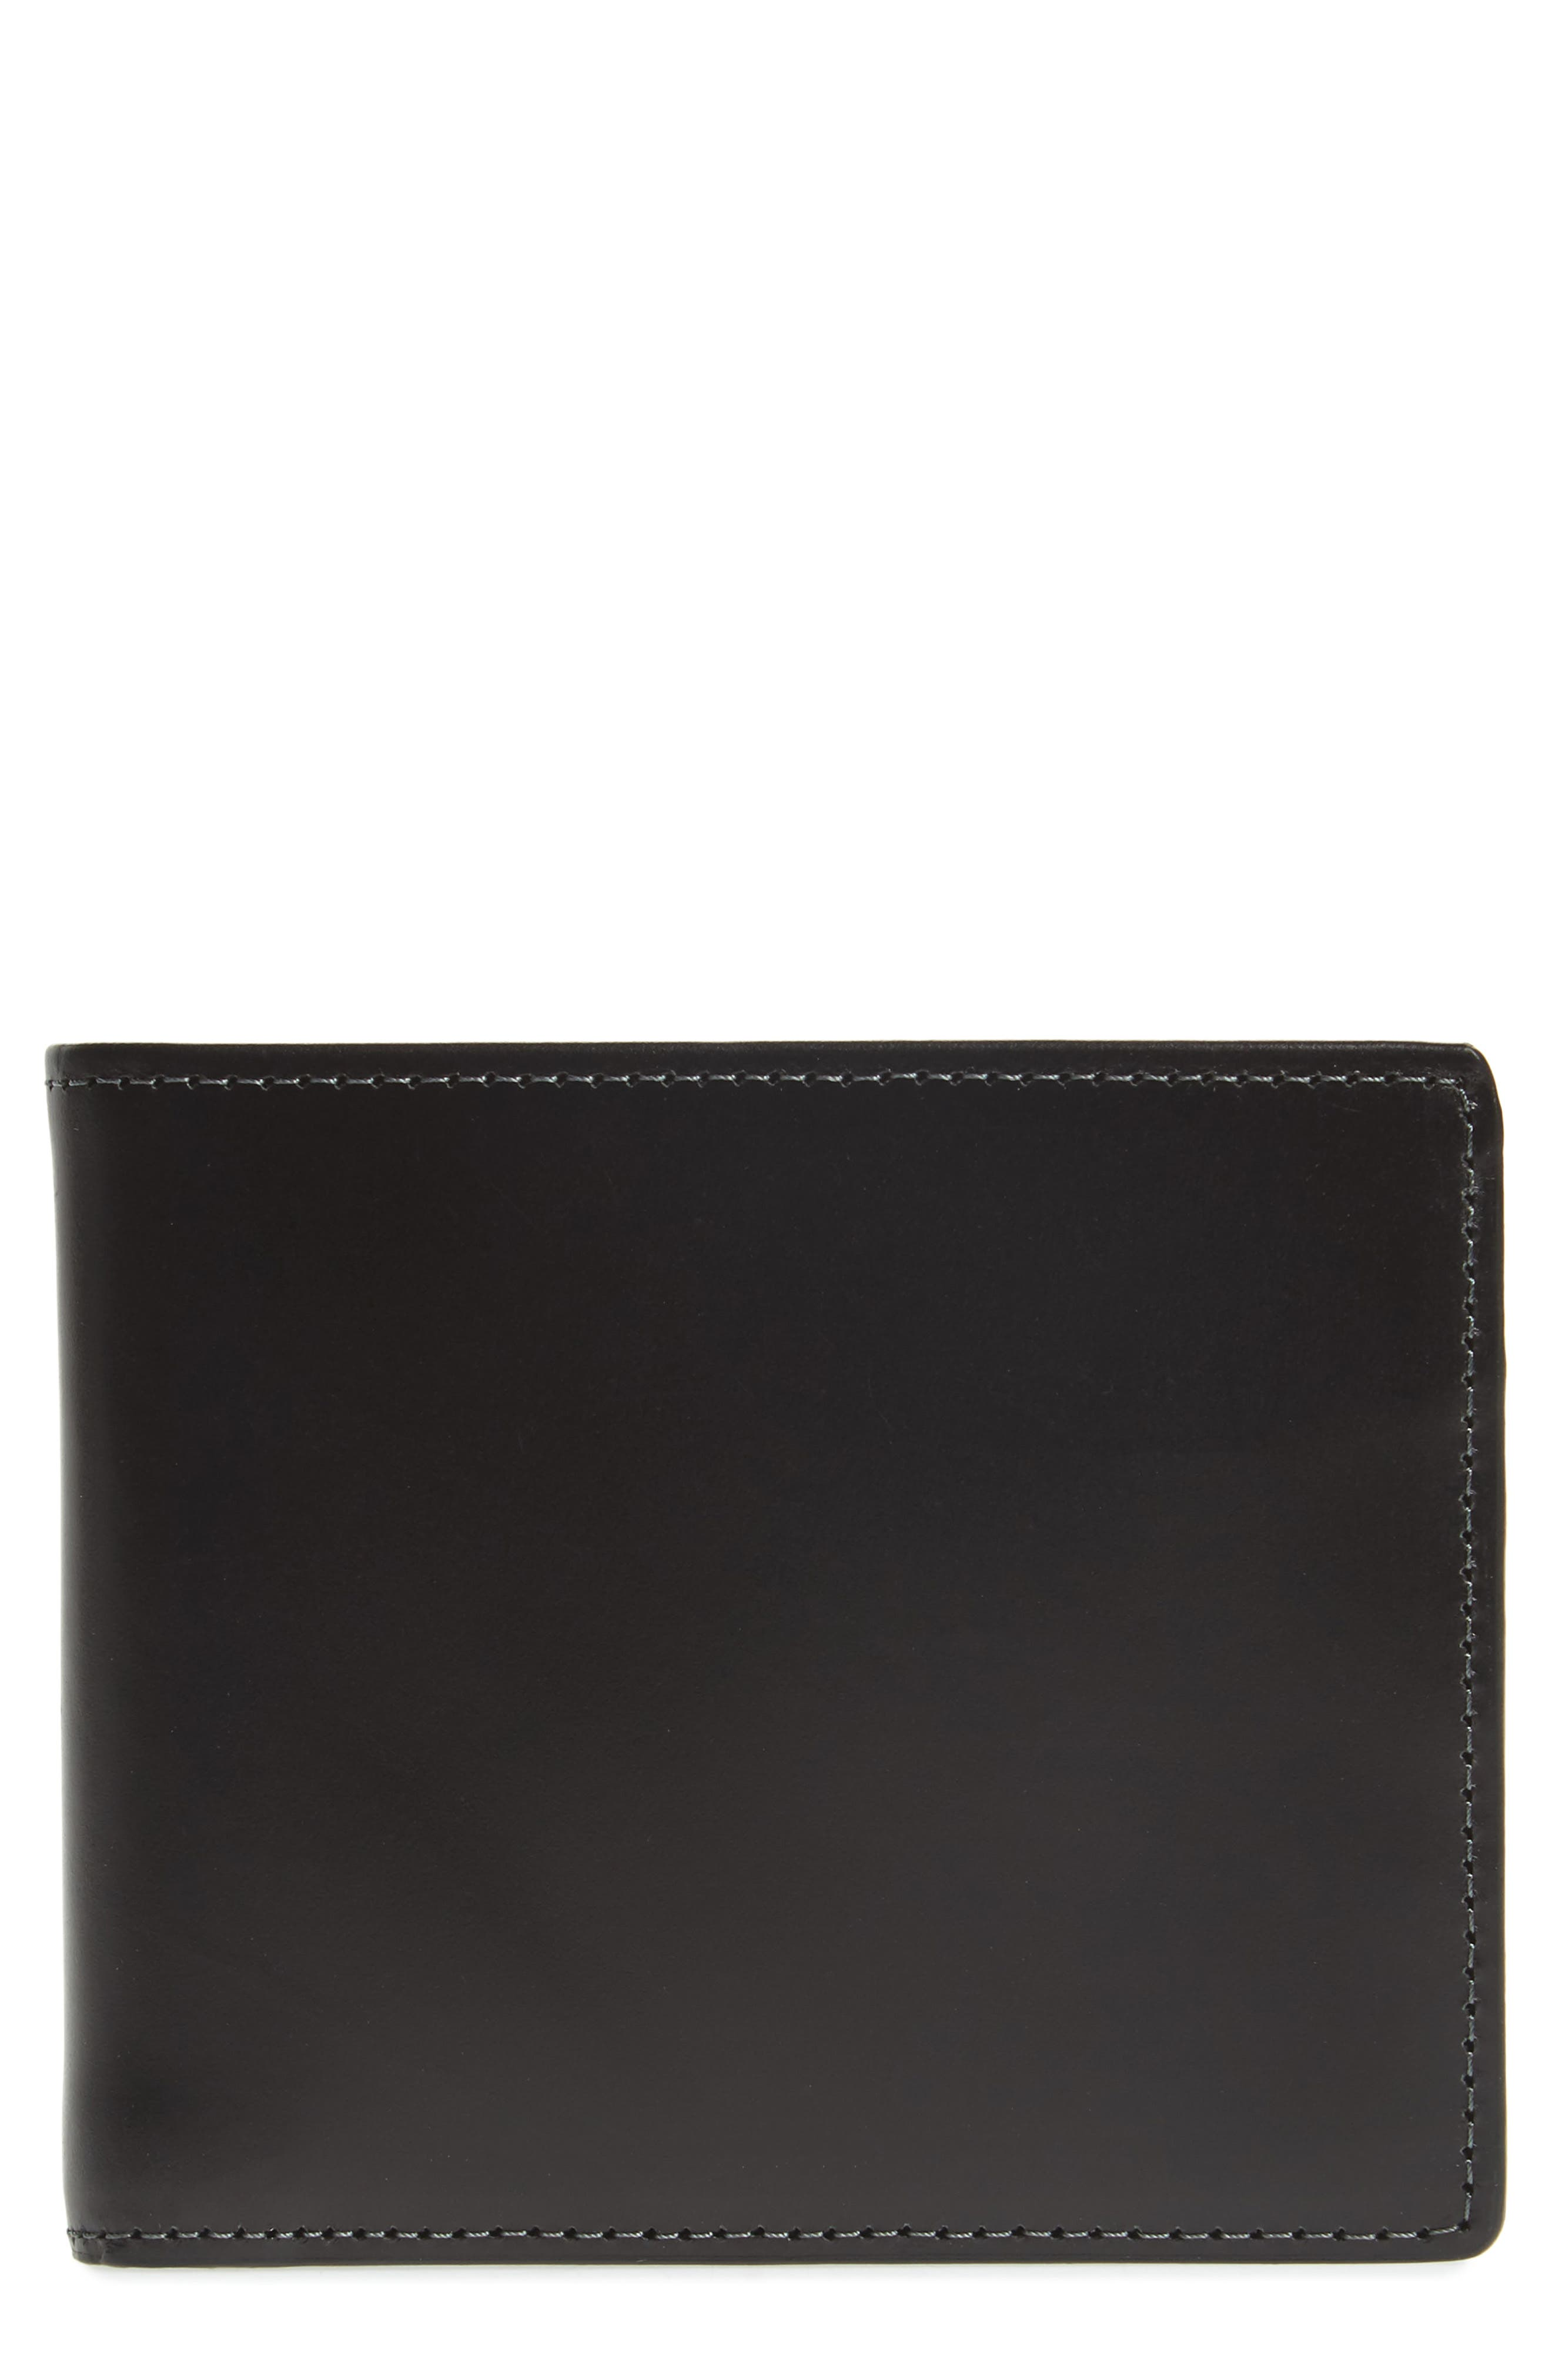 Wyatt Leather Wallet,                             Main thumbnail 1, color,                             BLACK